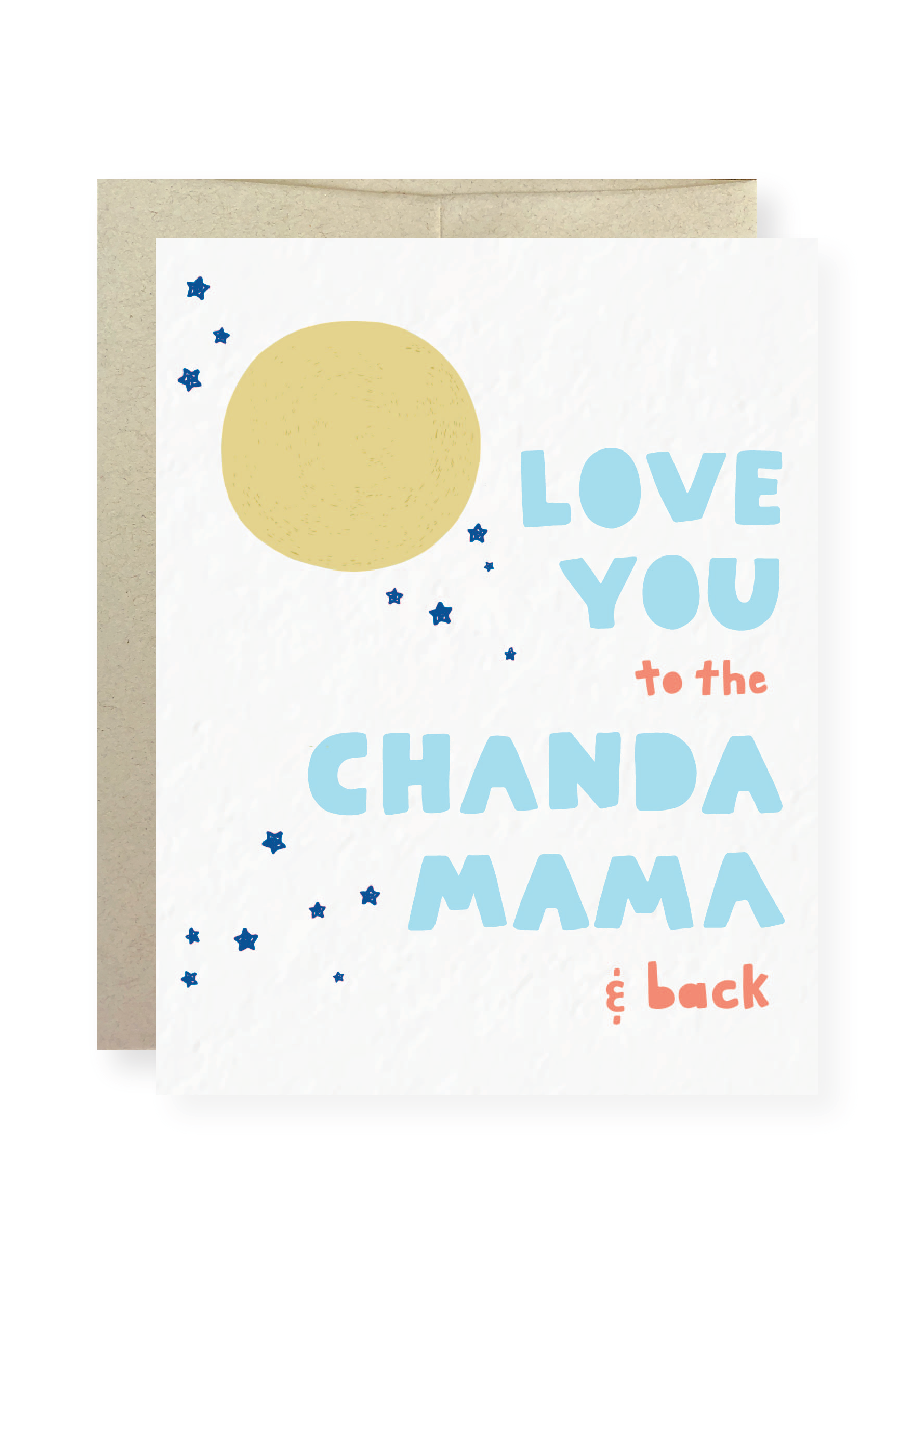 Chanda Mama and back